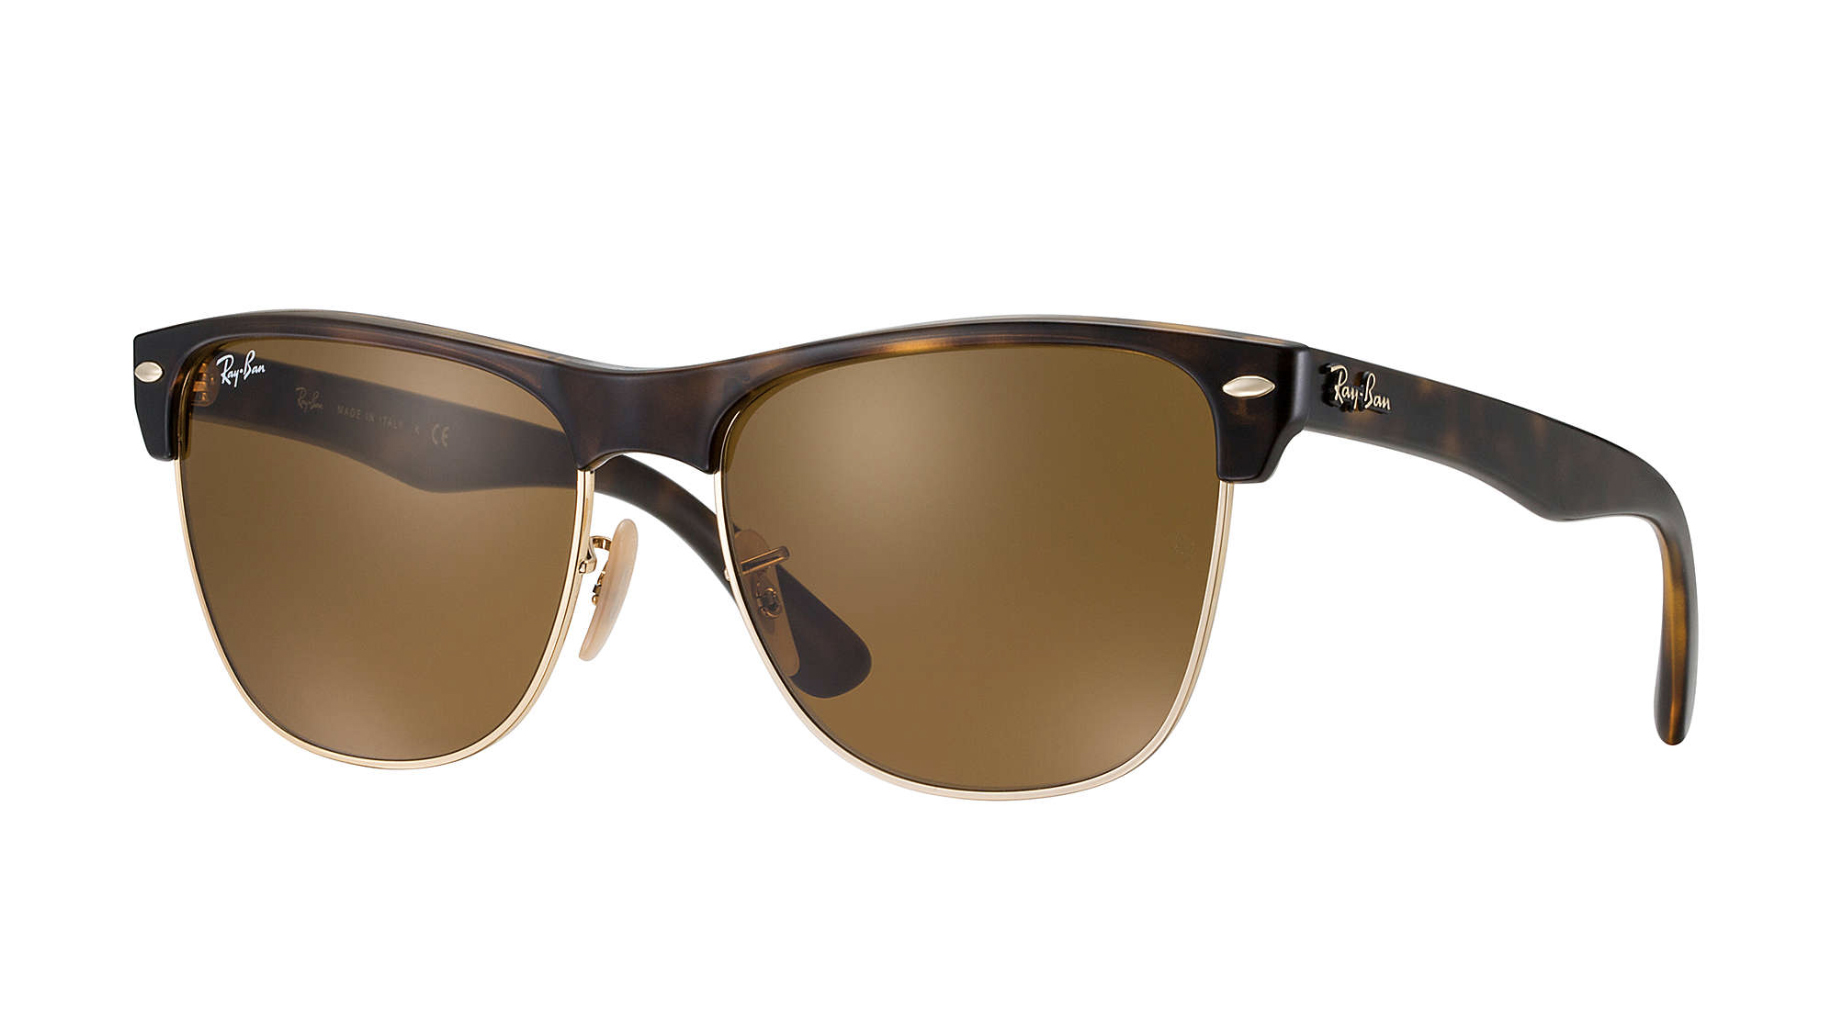 3dc5c3ddbb8c11 Ray-Ban sale  save £45 with the discount code  HELLOSUMMER